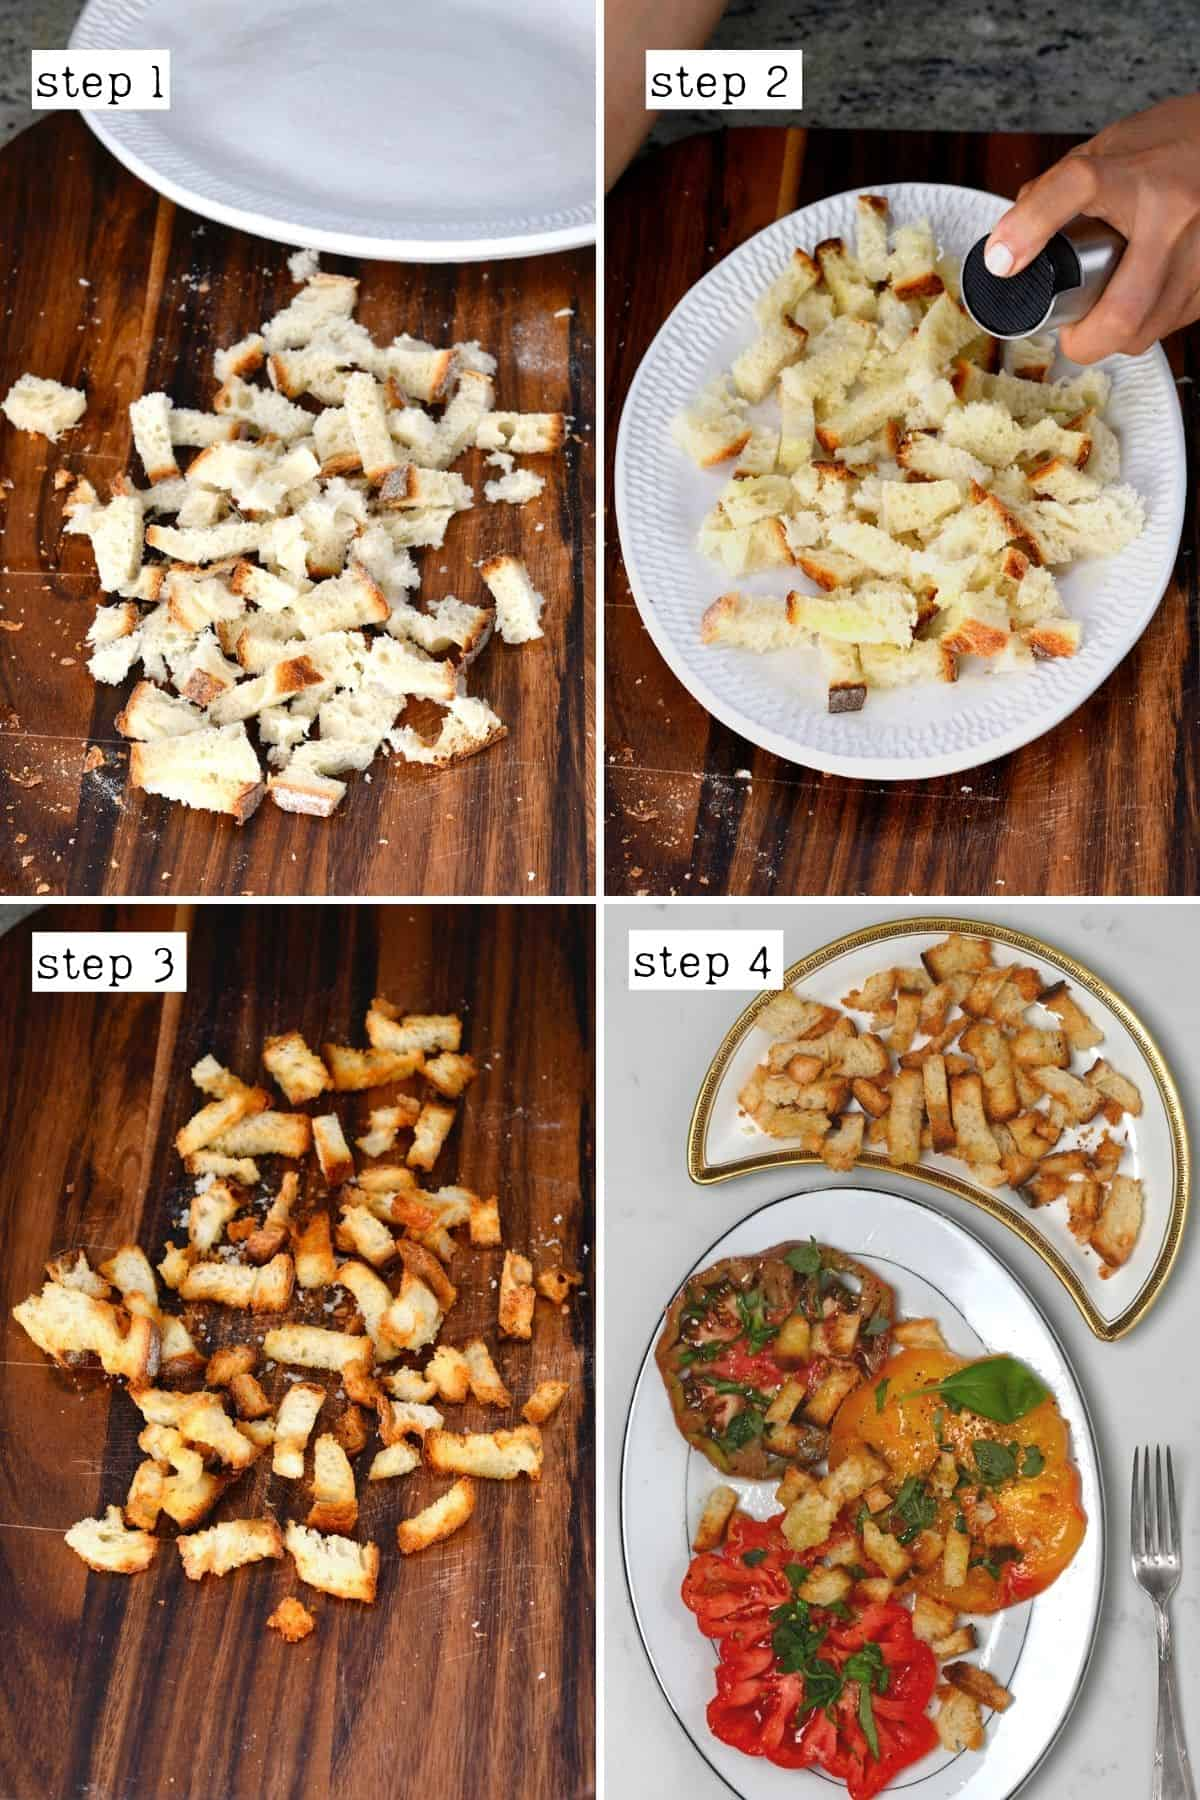 Steps for making croutons